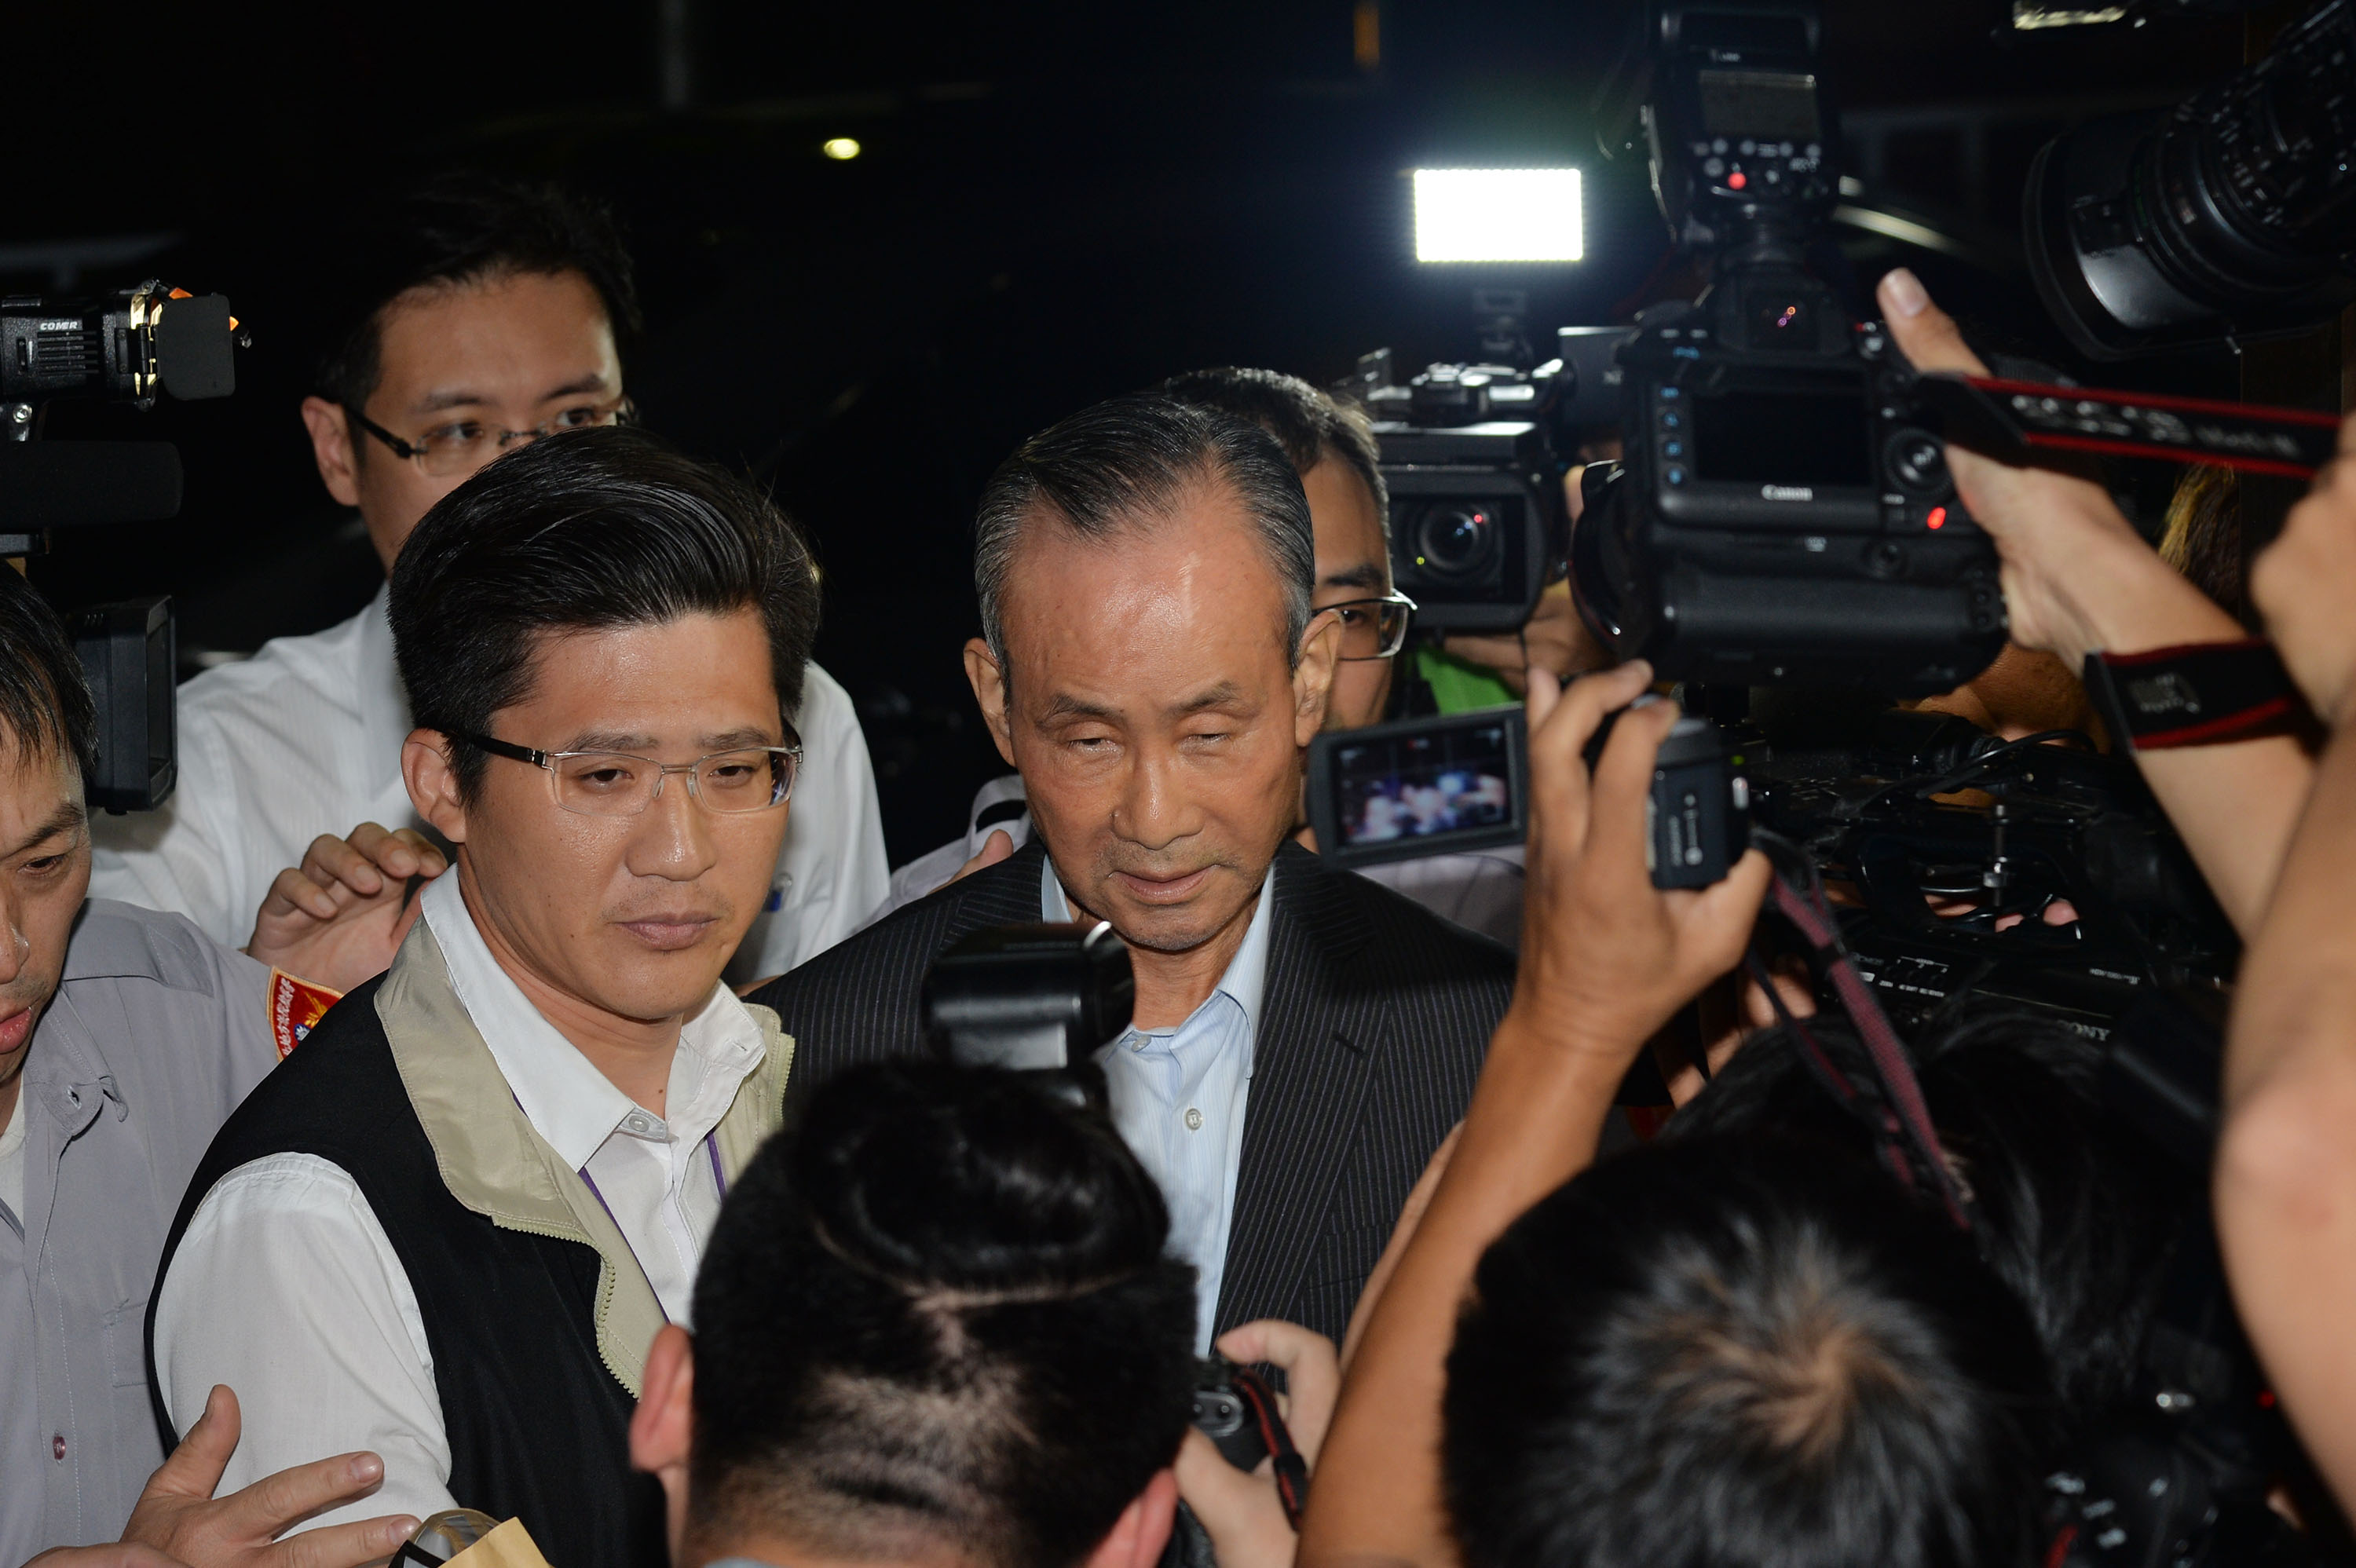 Farglory Group chief Chao Teng-hsiung in July 1 appearance.